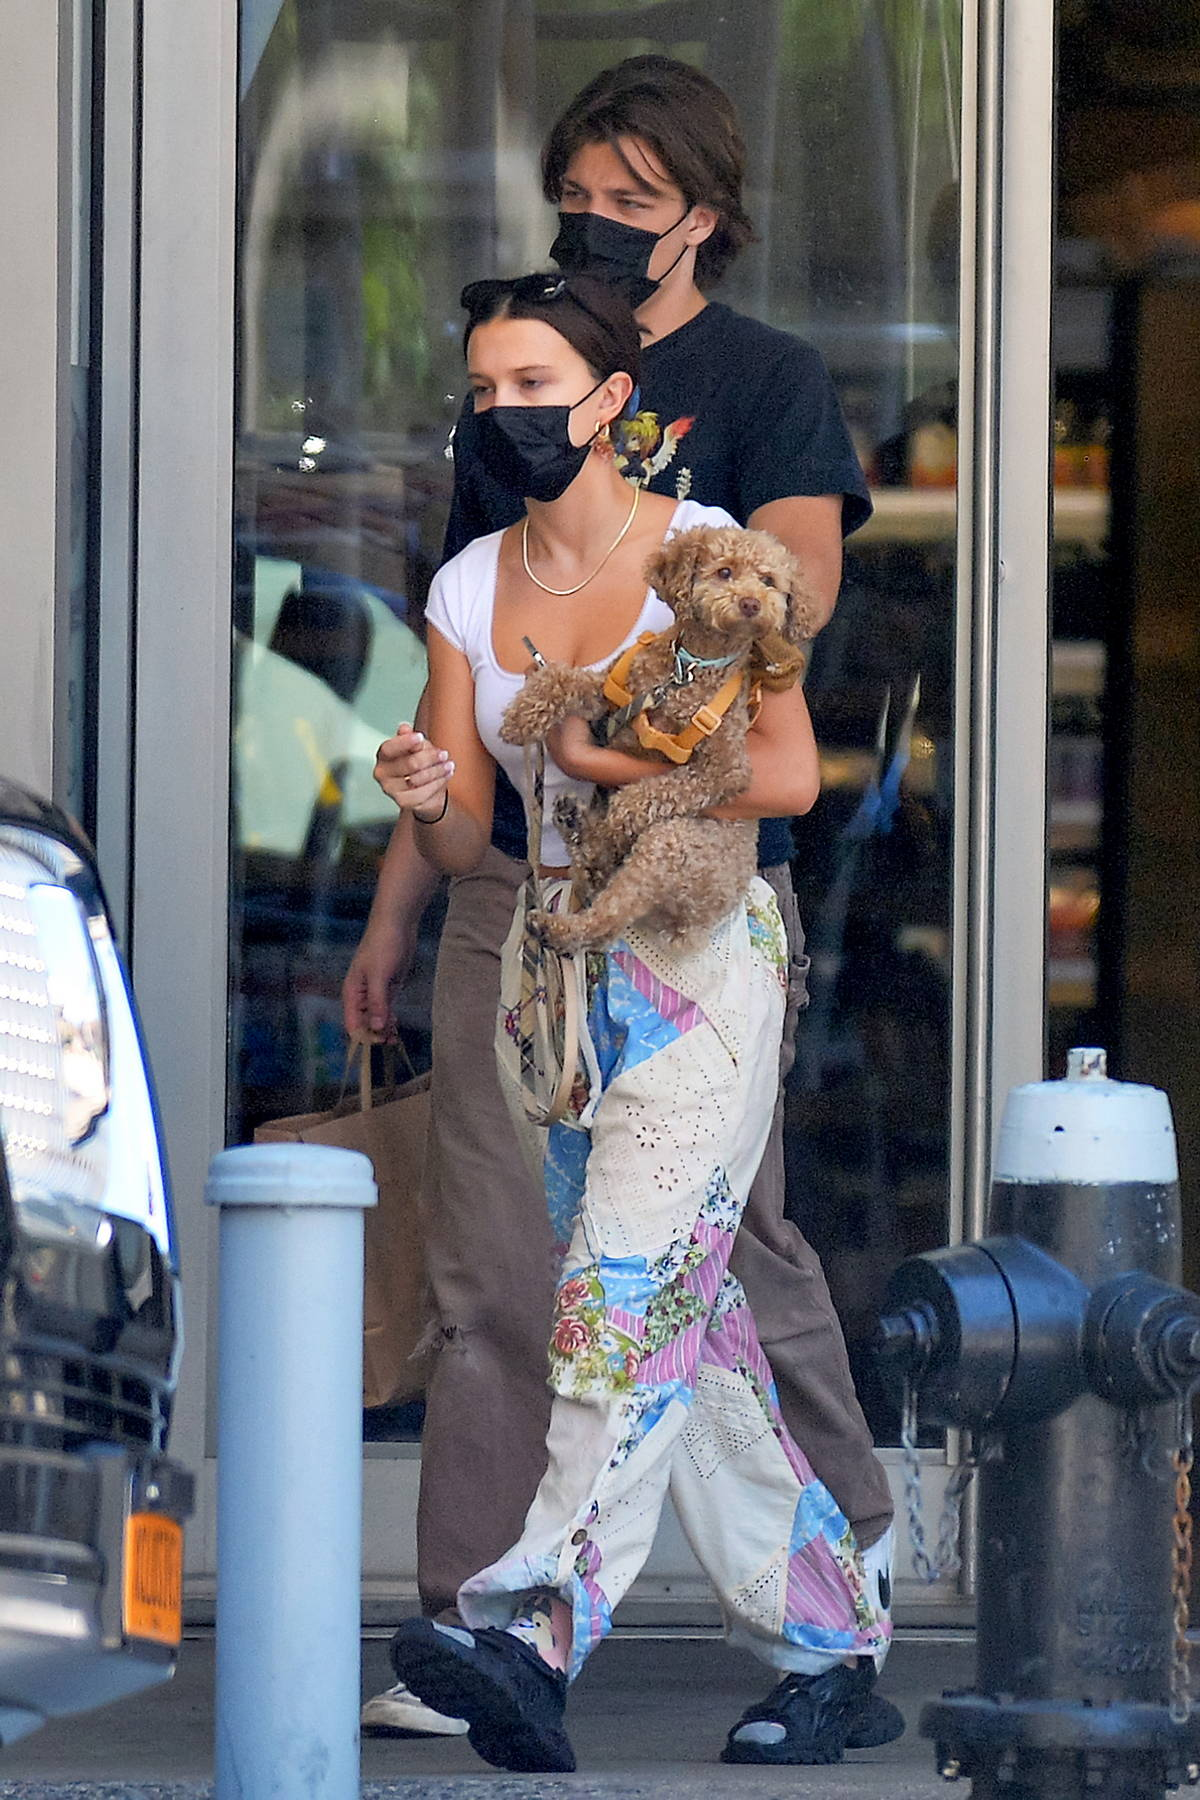 Millie Bobby Brown carries her cute puppy as she steps out with boyfriend Jake Bongiovi in New York City